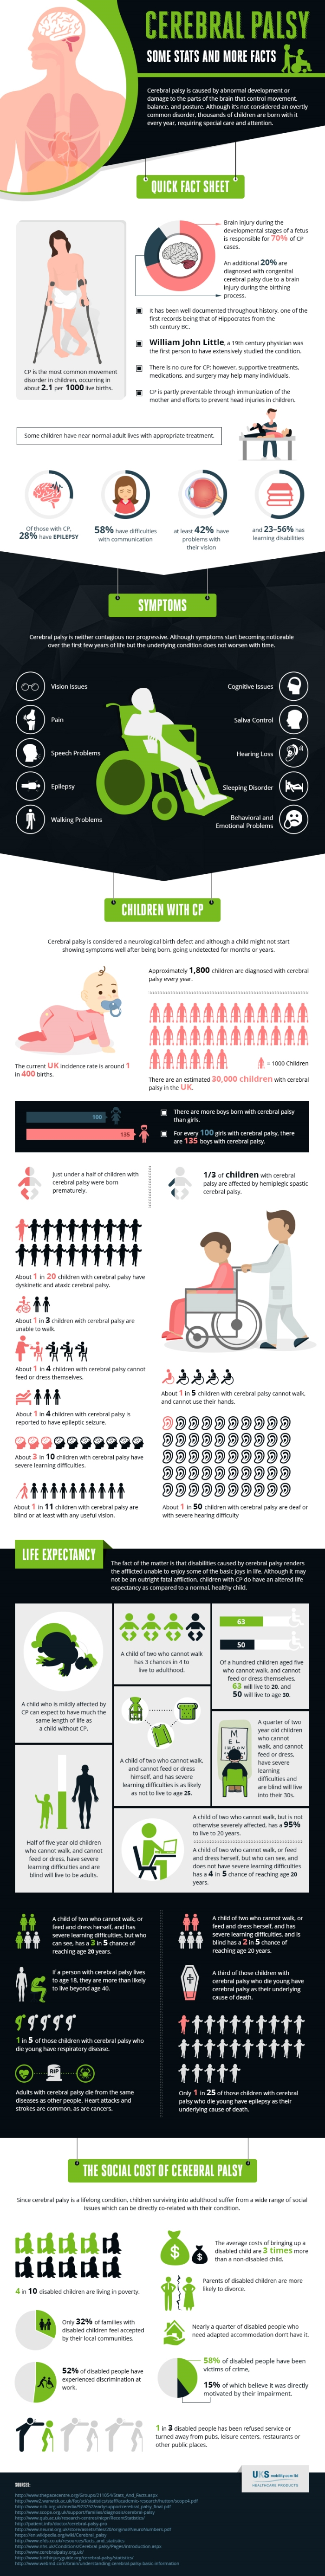 infographic about cerebral palsy. See text description below for detailed information